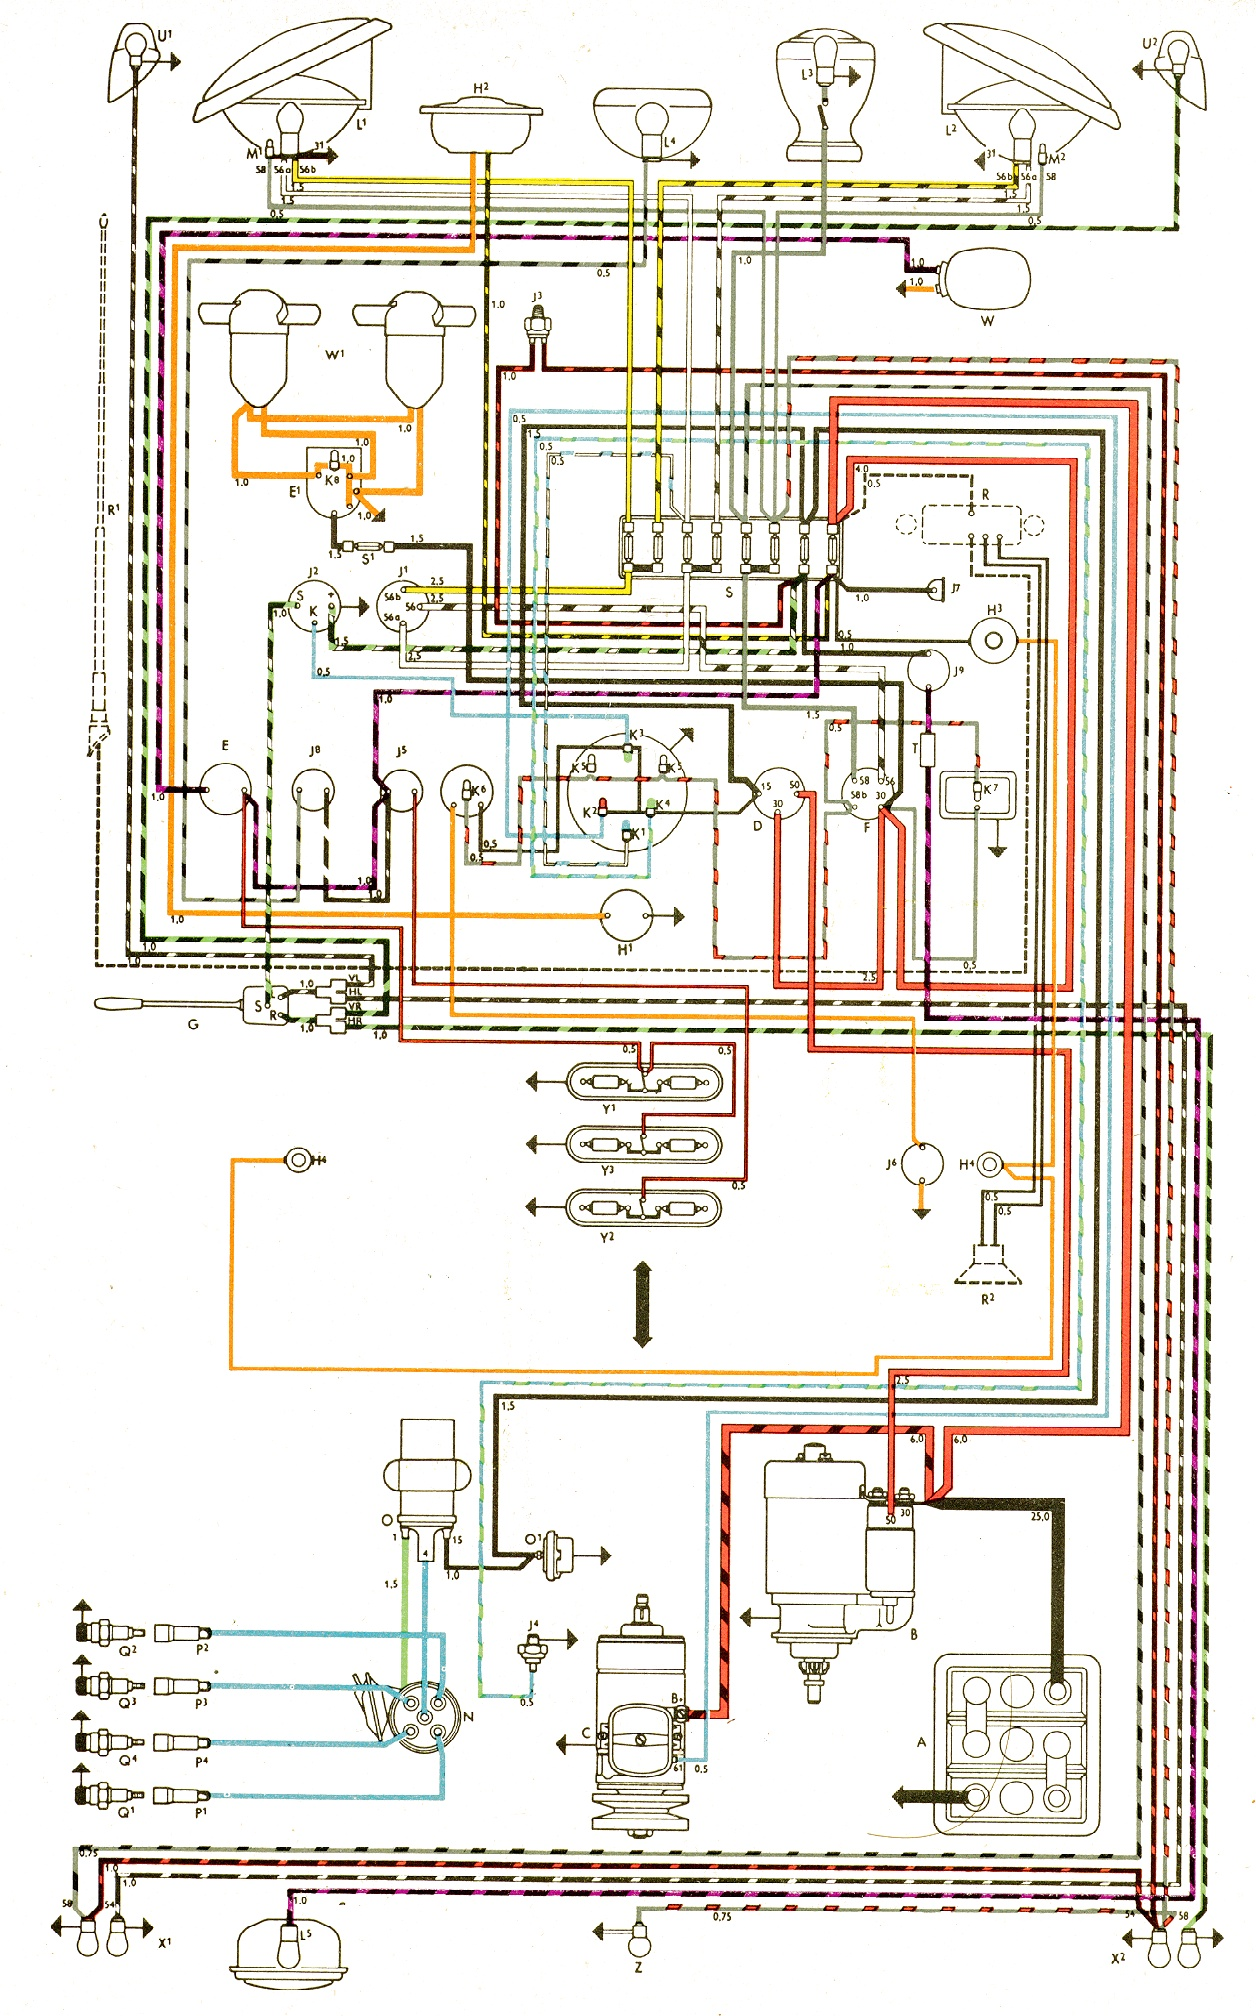 bus 62 bus wiring diagram vw wiring harness diagram \u2022 wiring diagrams j 1957 vw bug wiring diagram at edmiracle.co